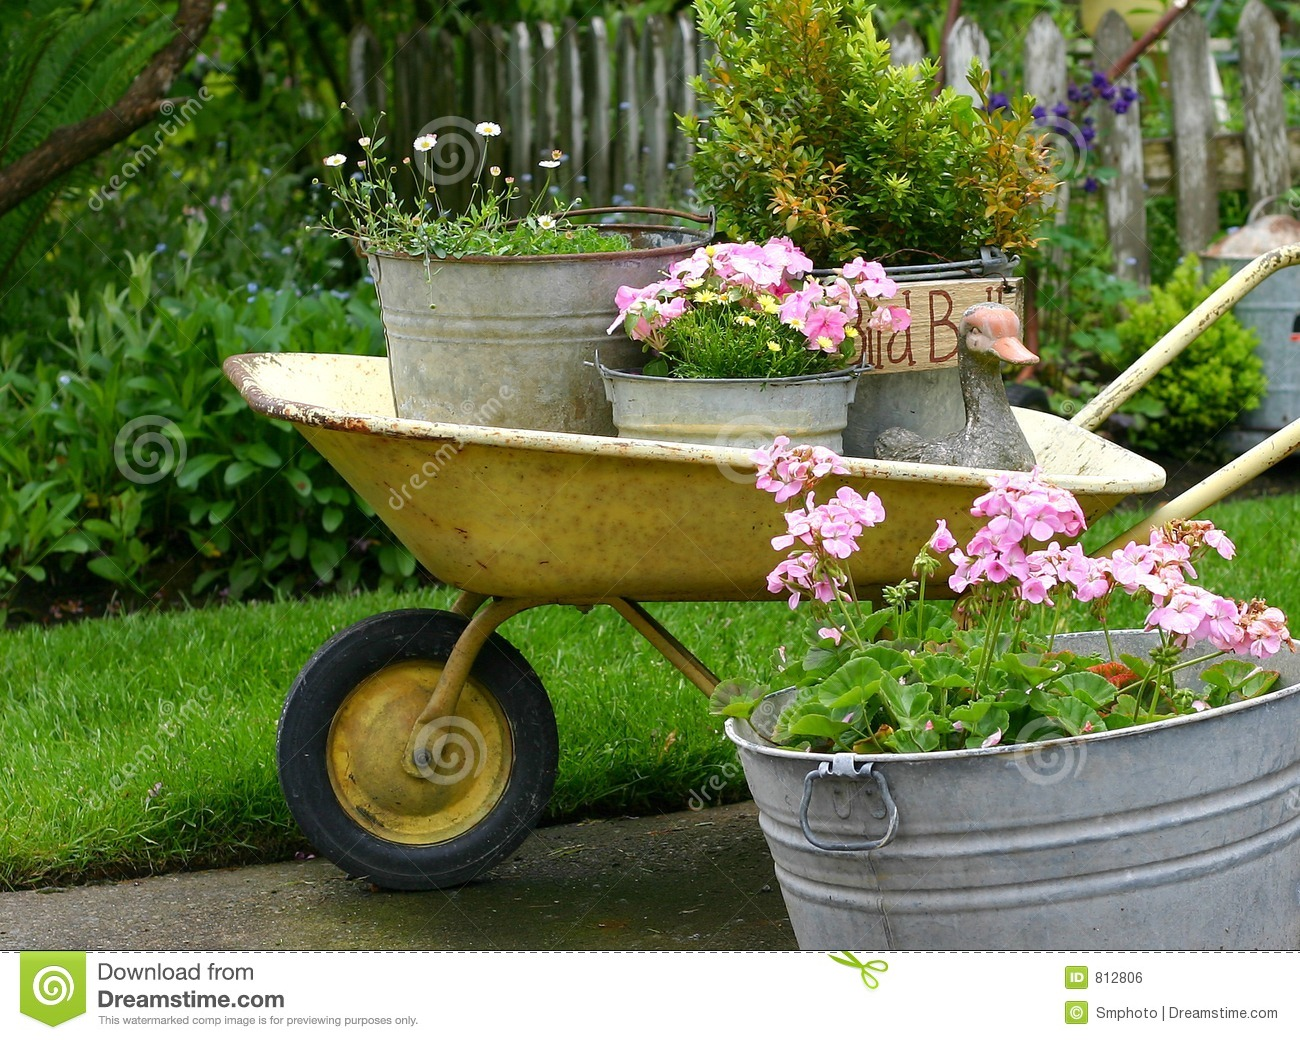 Gardening pots royalty free stock image image 812806 for Gardening tools melbourne